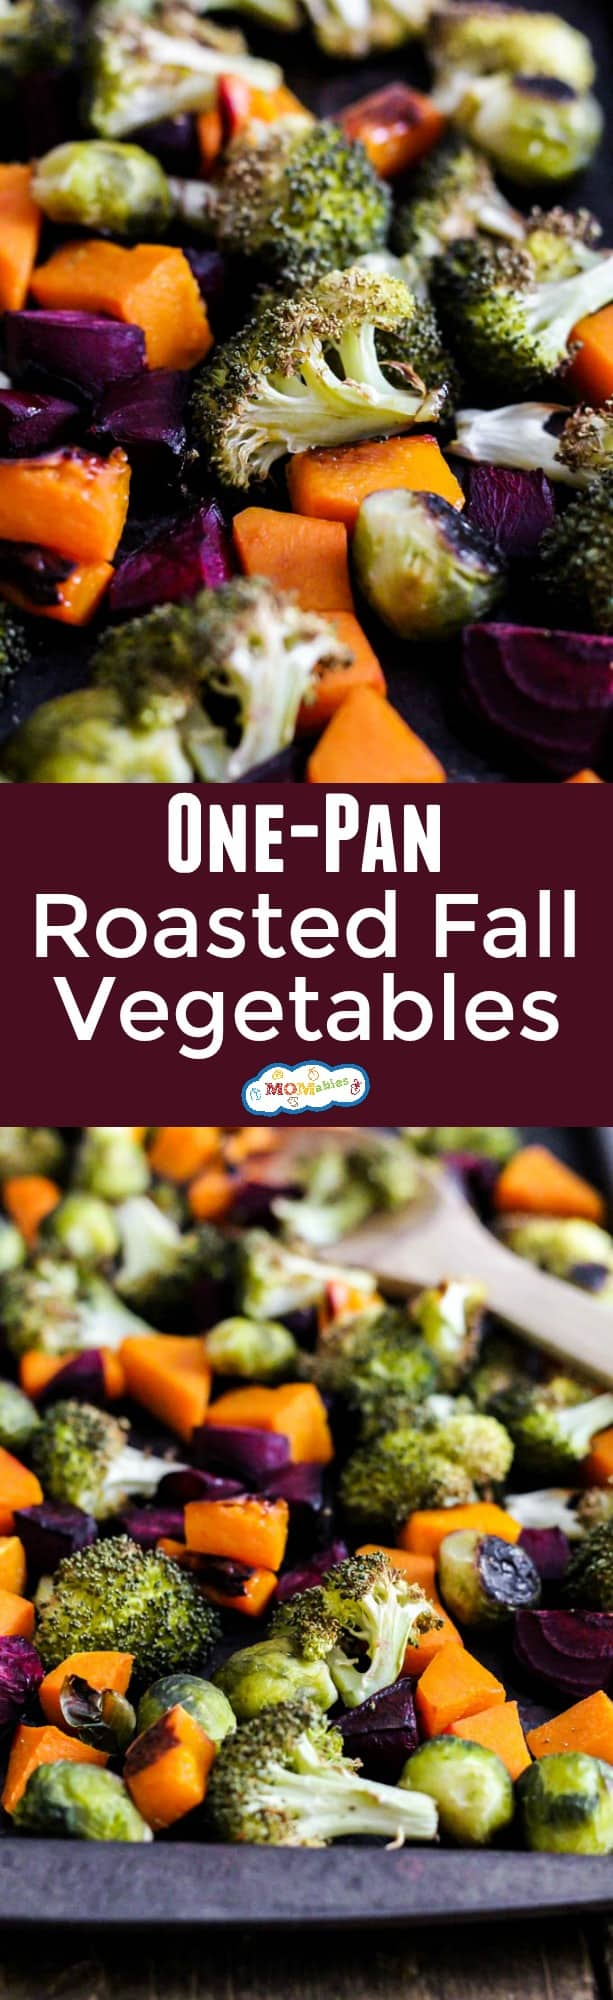 Want your family to eat more vegetables? They won't be able to resist these One-Pan Roasted Fall Vegetables! Minimal clean-up and lots of flavor.